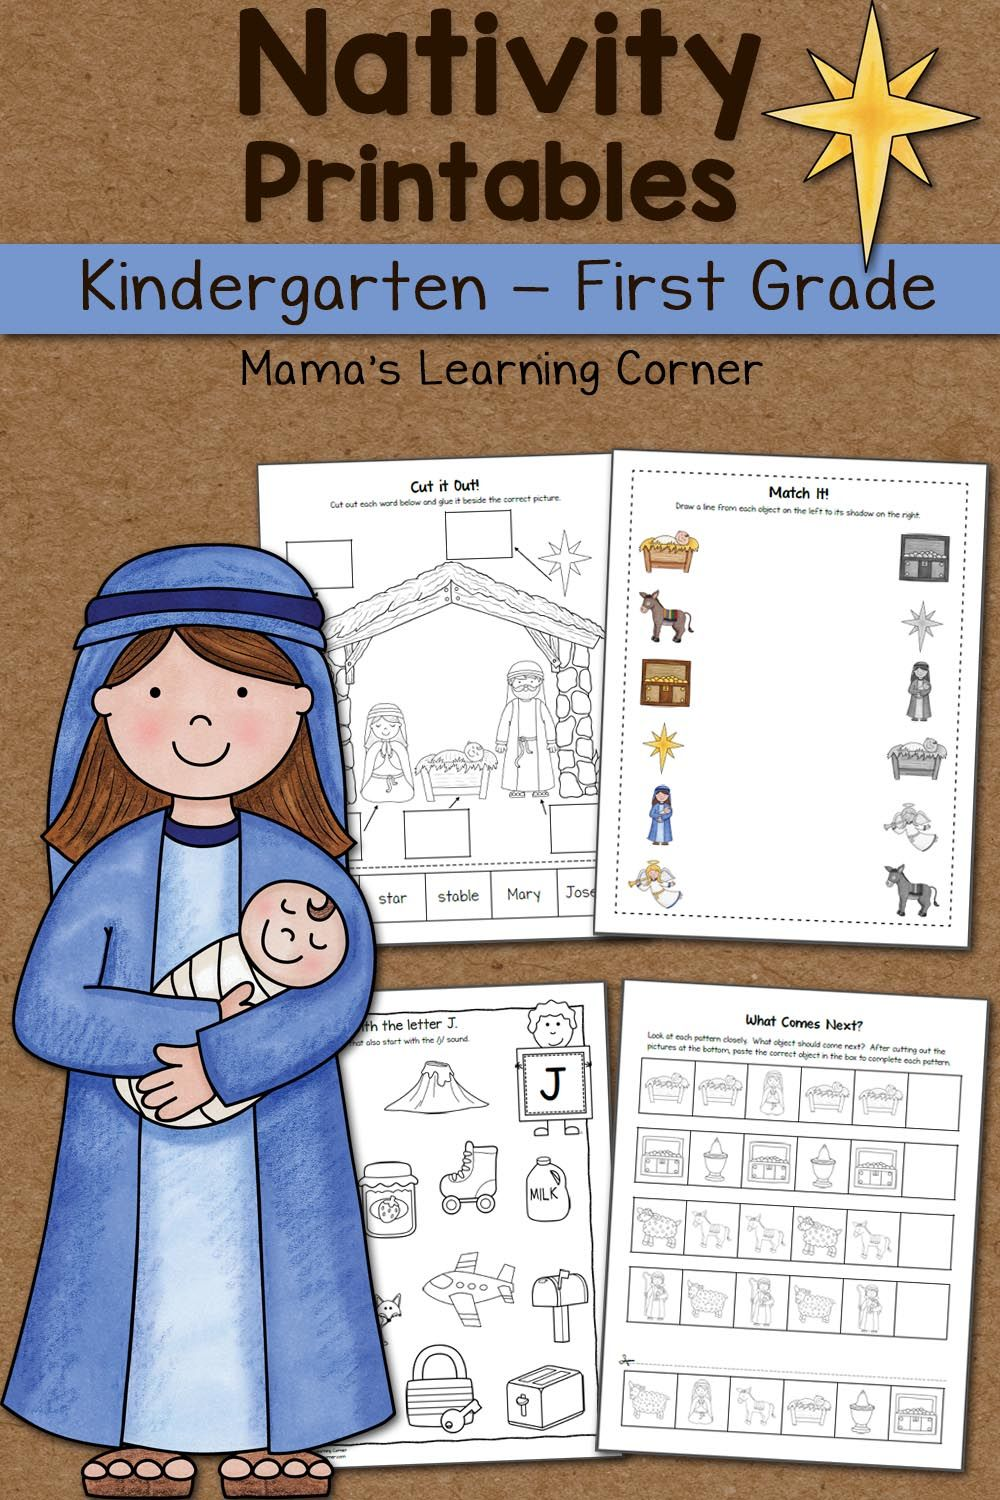 Nativity Worksheet Packet for Kindergarten and First Grade   Christmas  kindergarten [ 1500 x 1000 Pixel ]